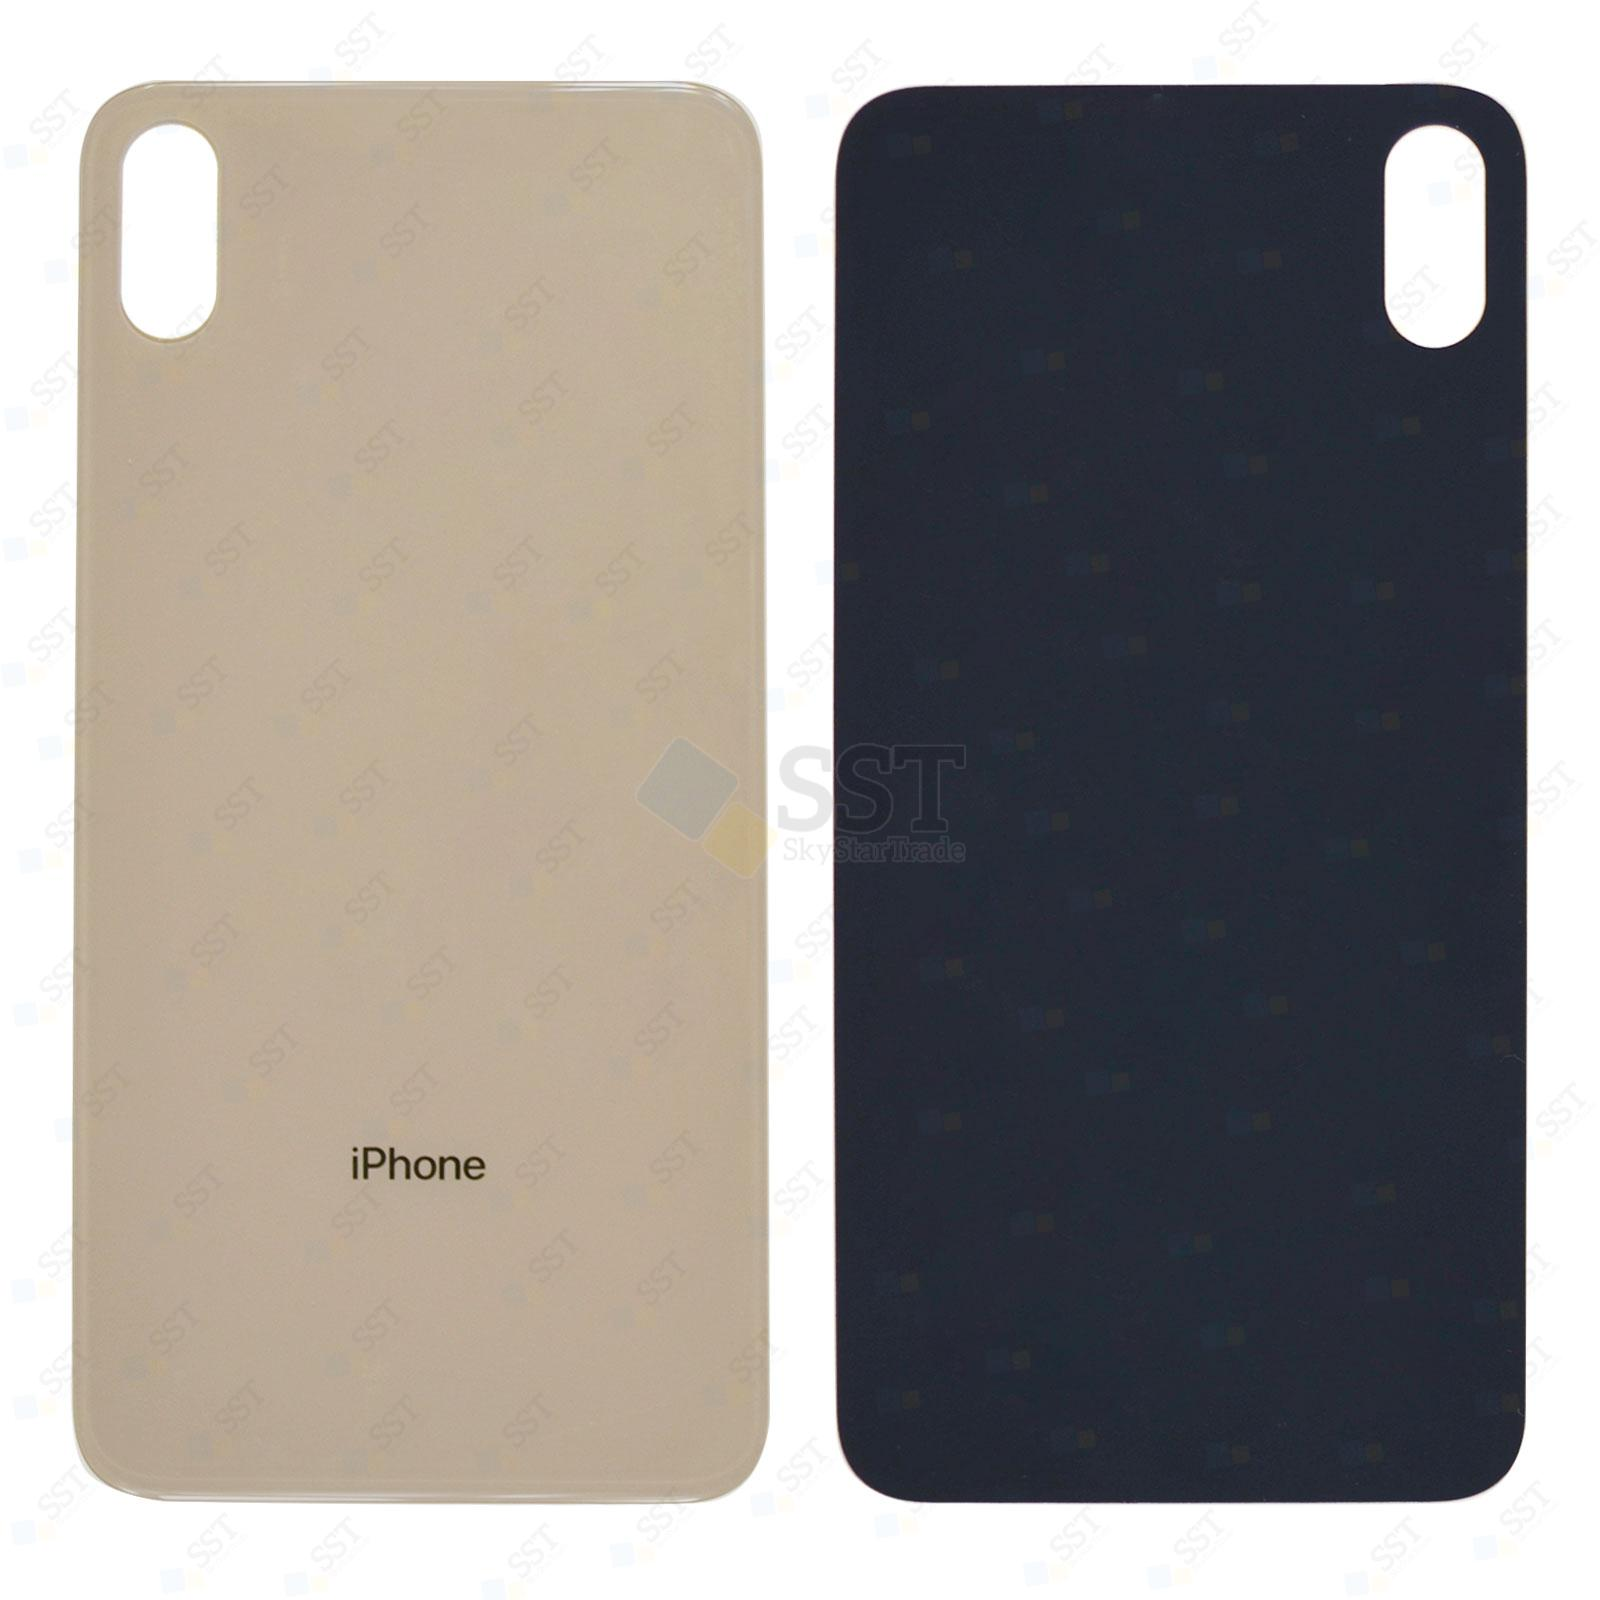 iPhone XS Max A1921 A2101 A2102 A2103 A2104 Back Cover Battery Door, Gold